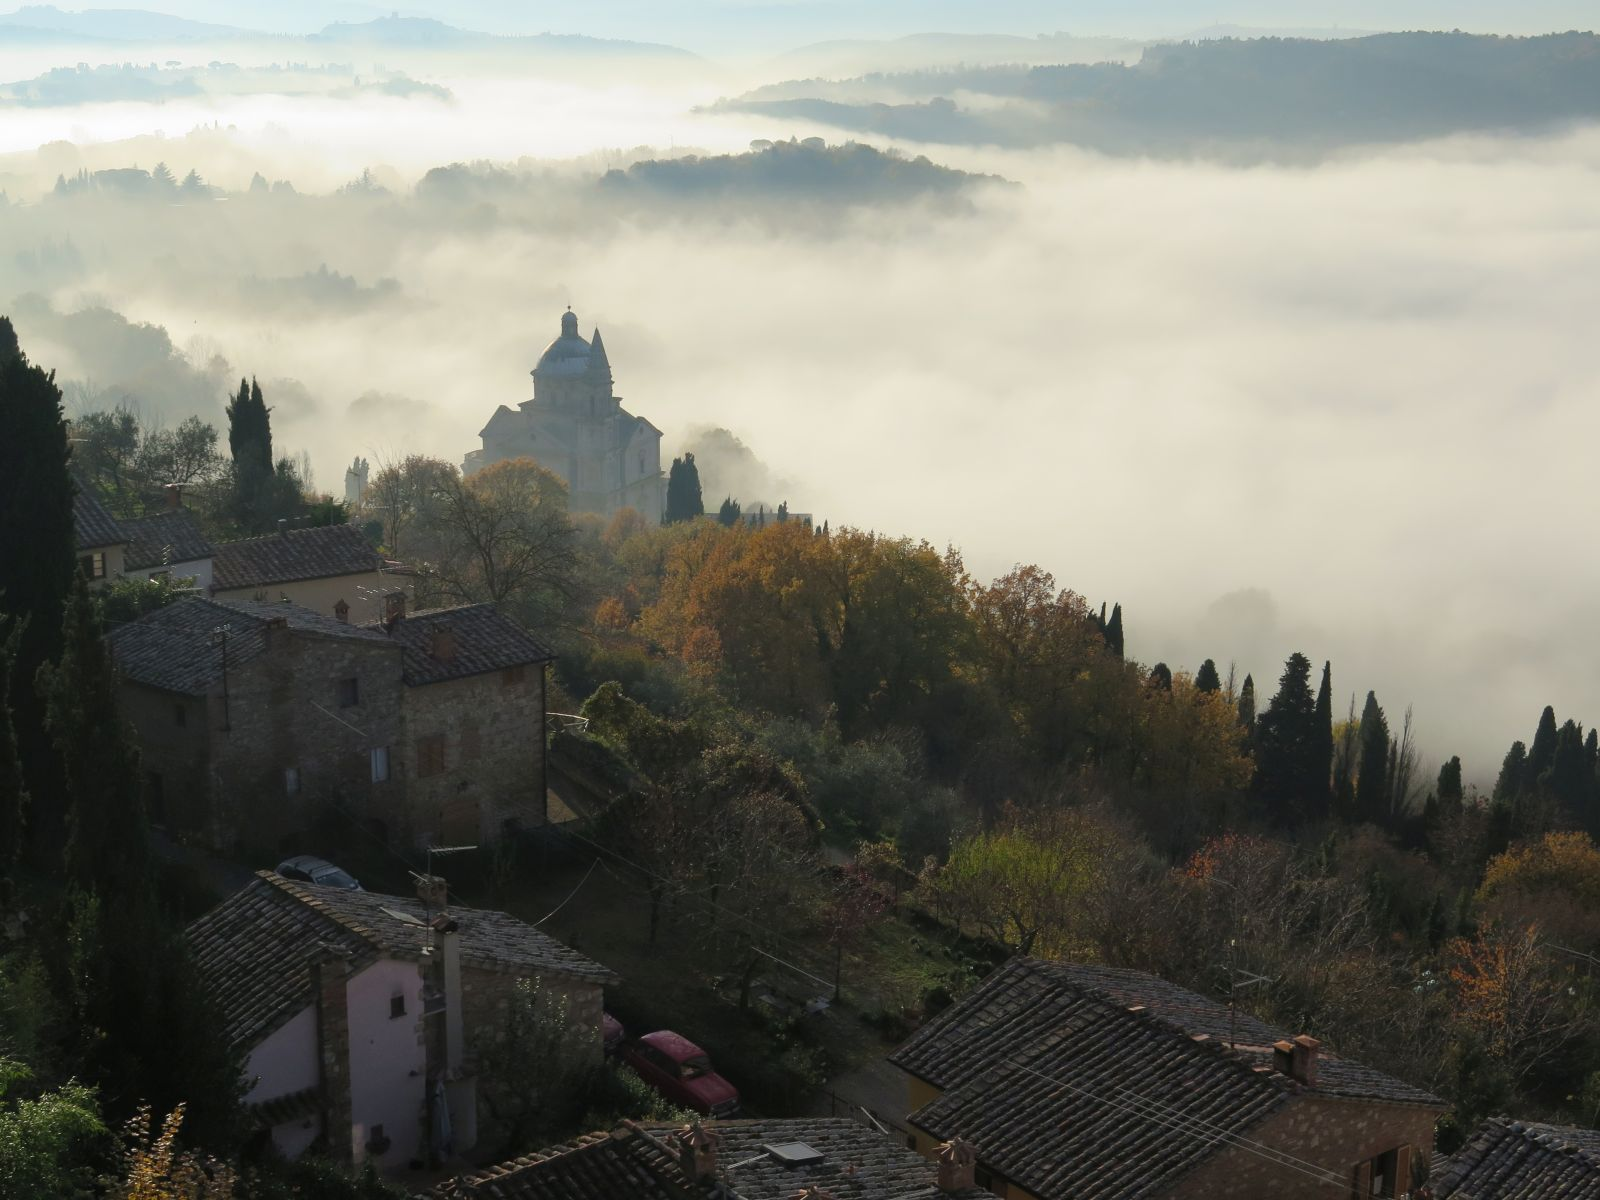 Montepulciano - Art, culture, and a tradition of fine living